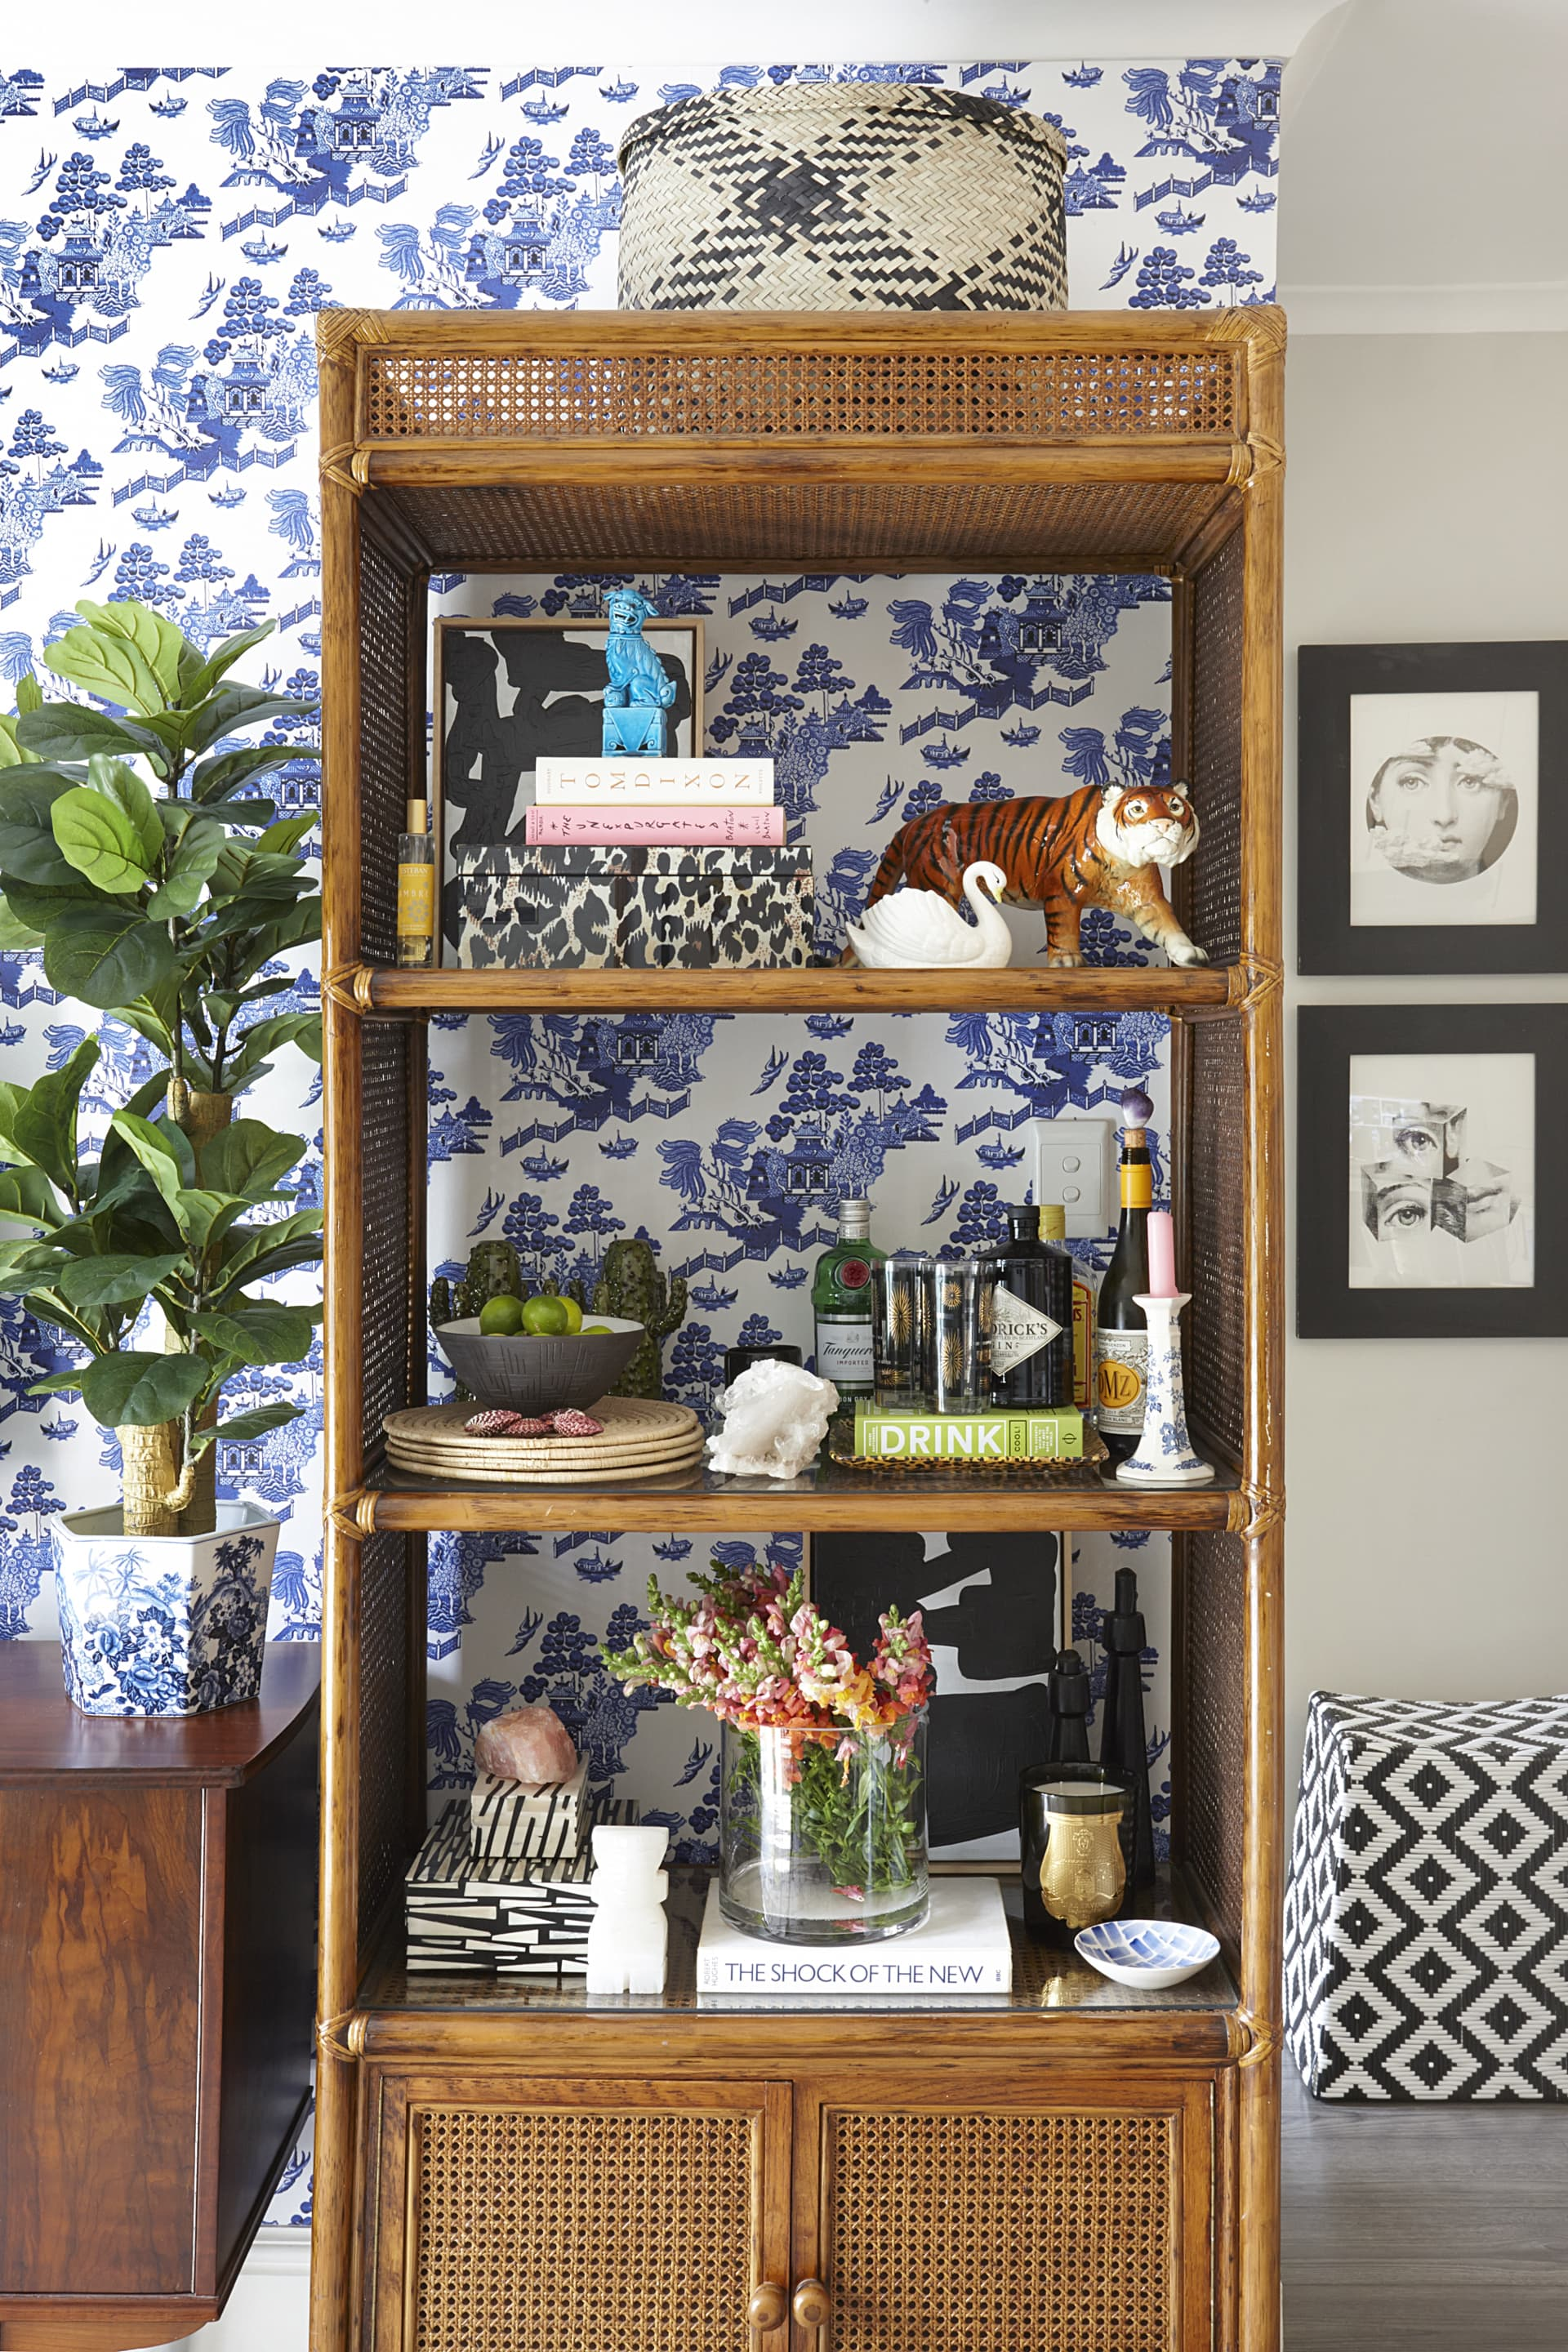 The homeowner's inherited open-shelved cane bookcase serves as both a drinks station and display unit. © Micky Hoyle